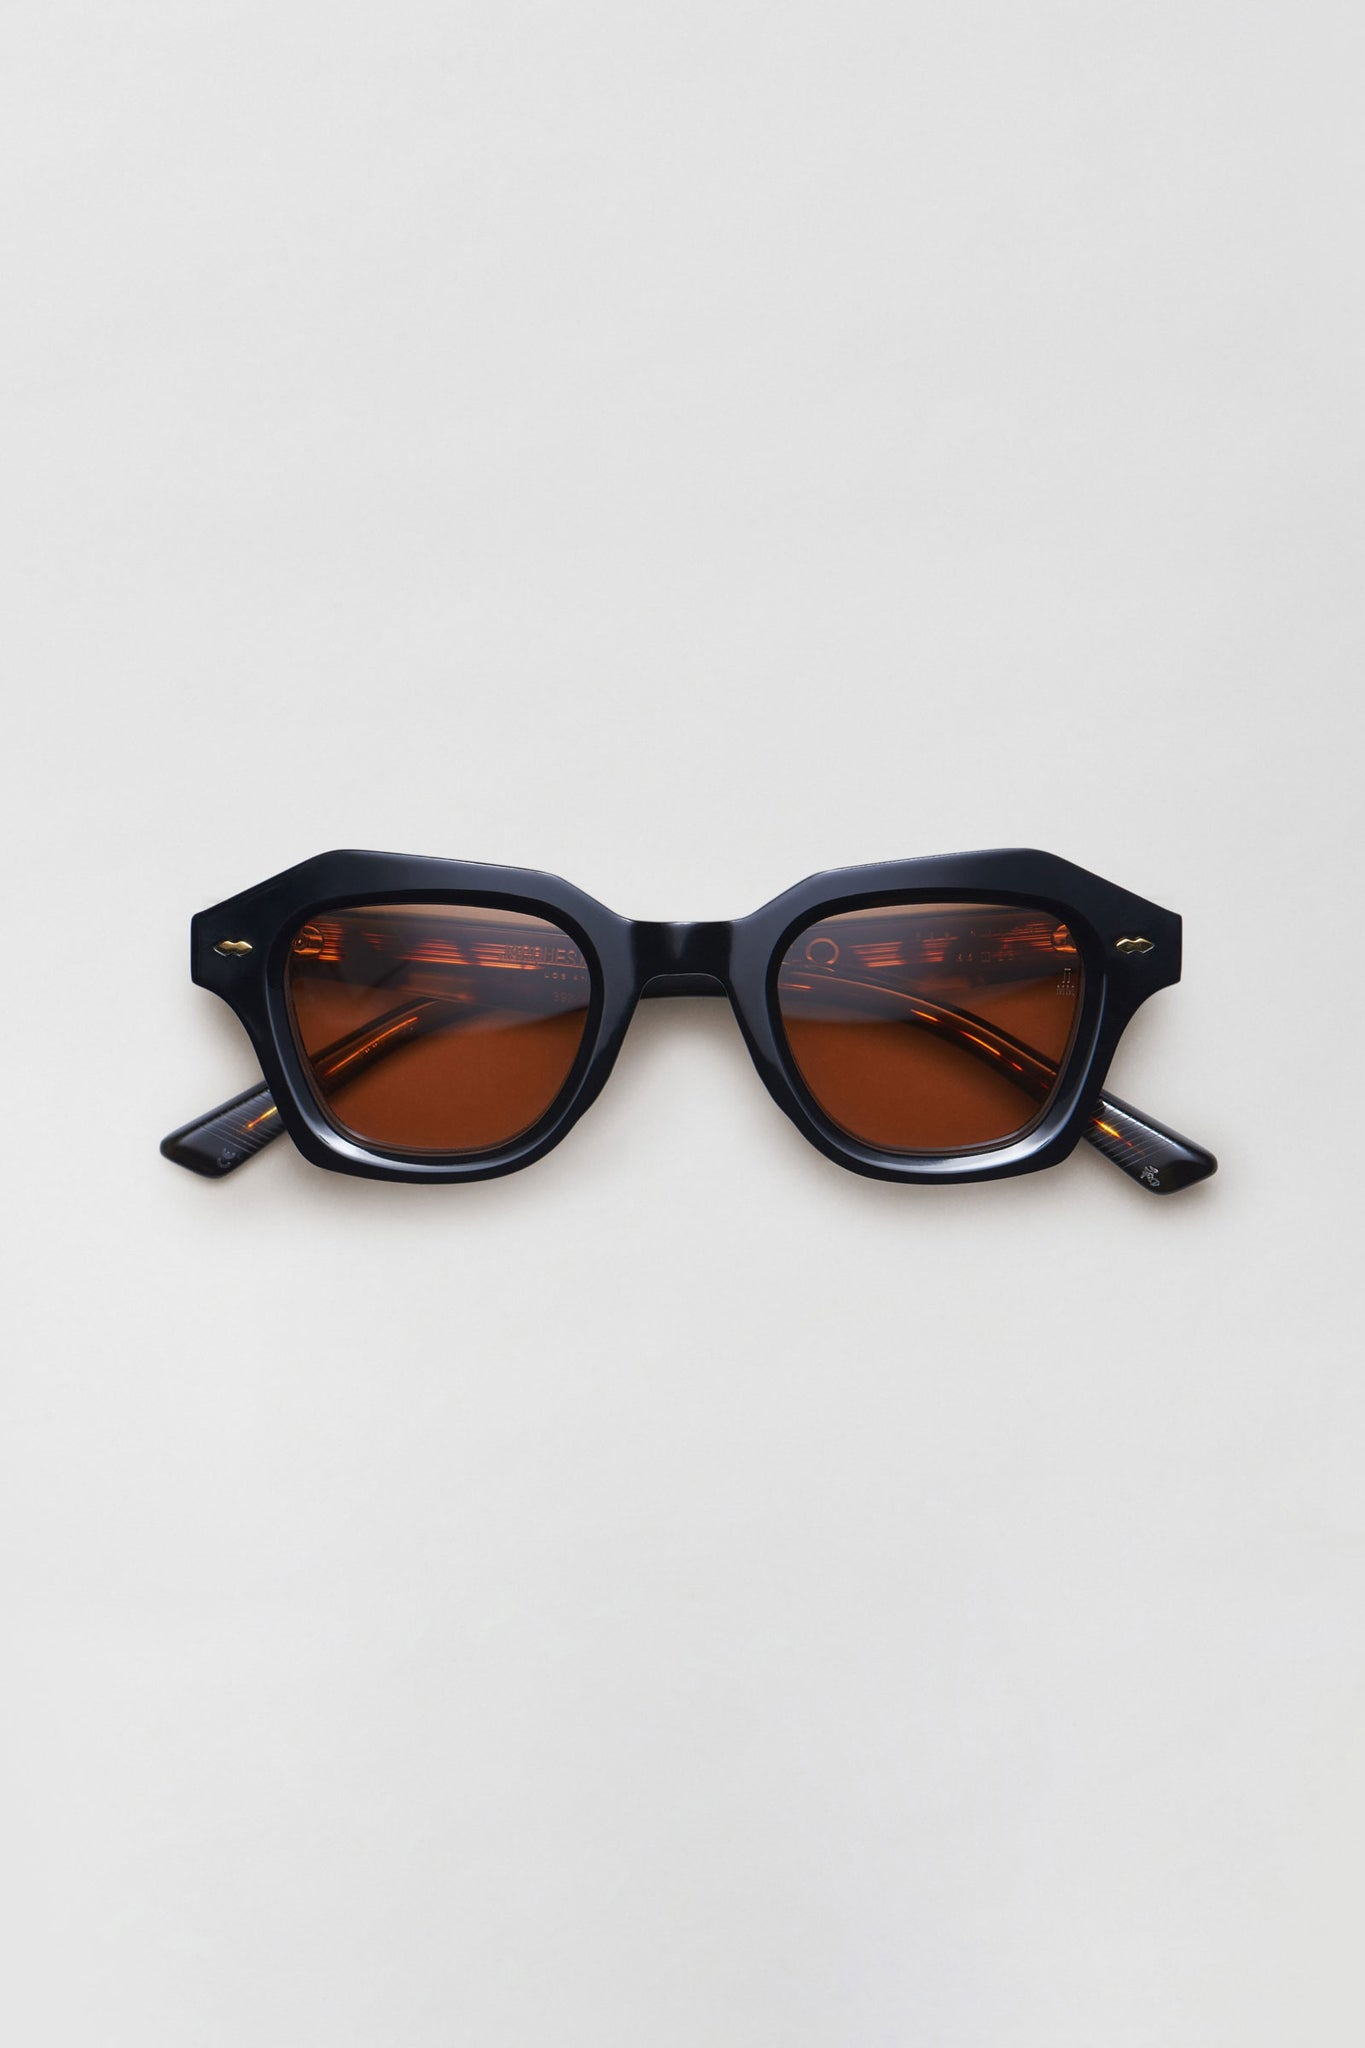 CO - Schindler Sunglasses, Noir